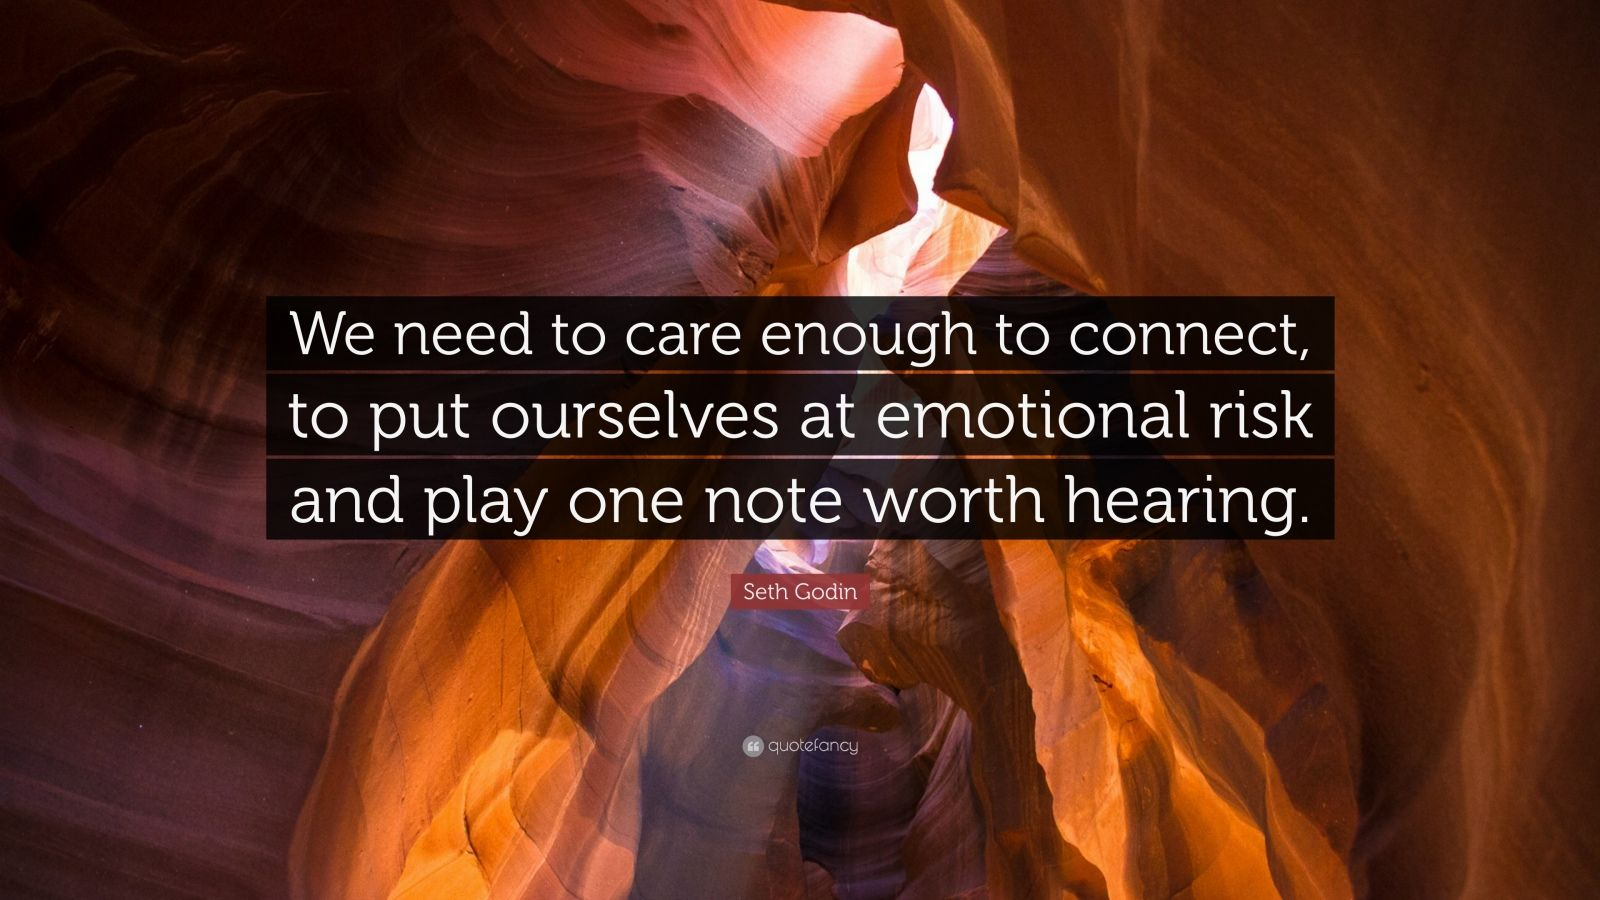 """Seth Godin Quote: """"We need to care enough to connect, to put ourselves at emotional risk and play one note worth hearing."""""""